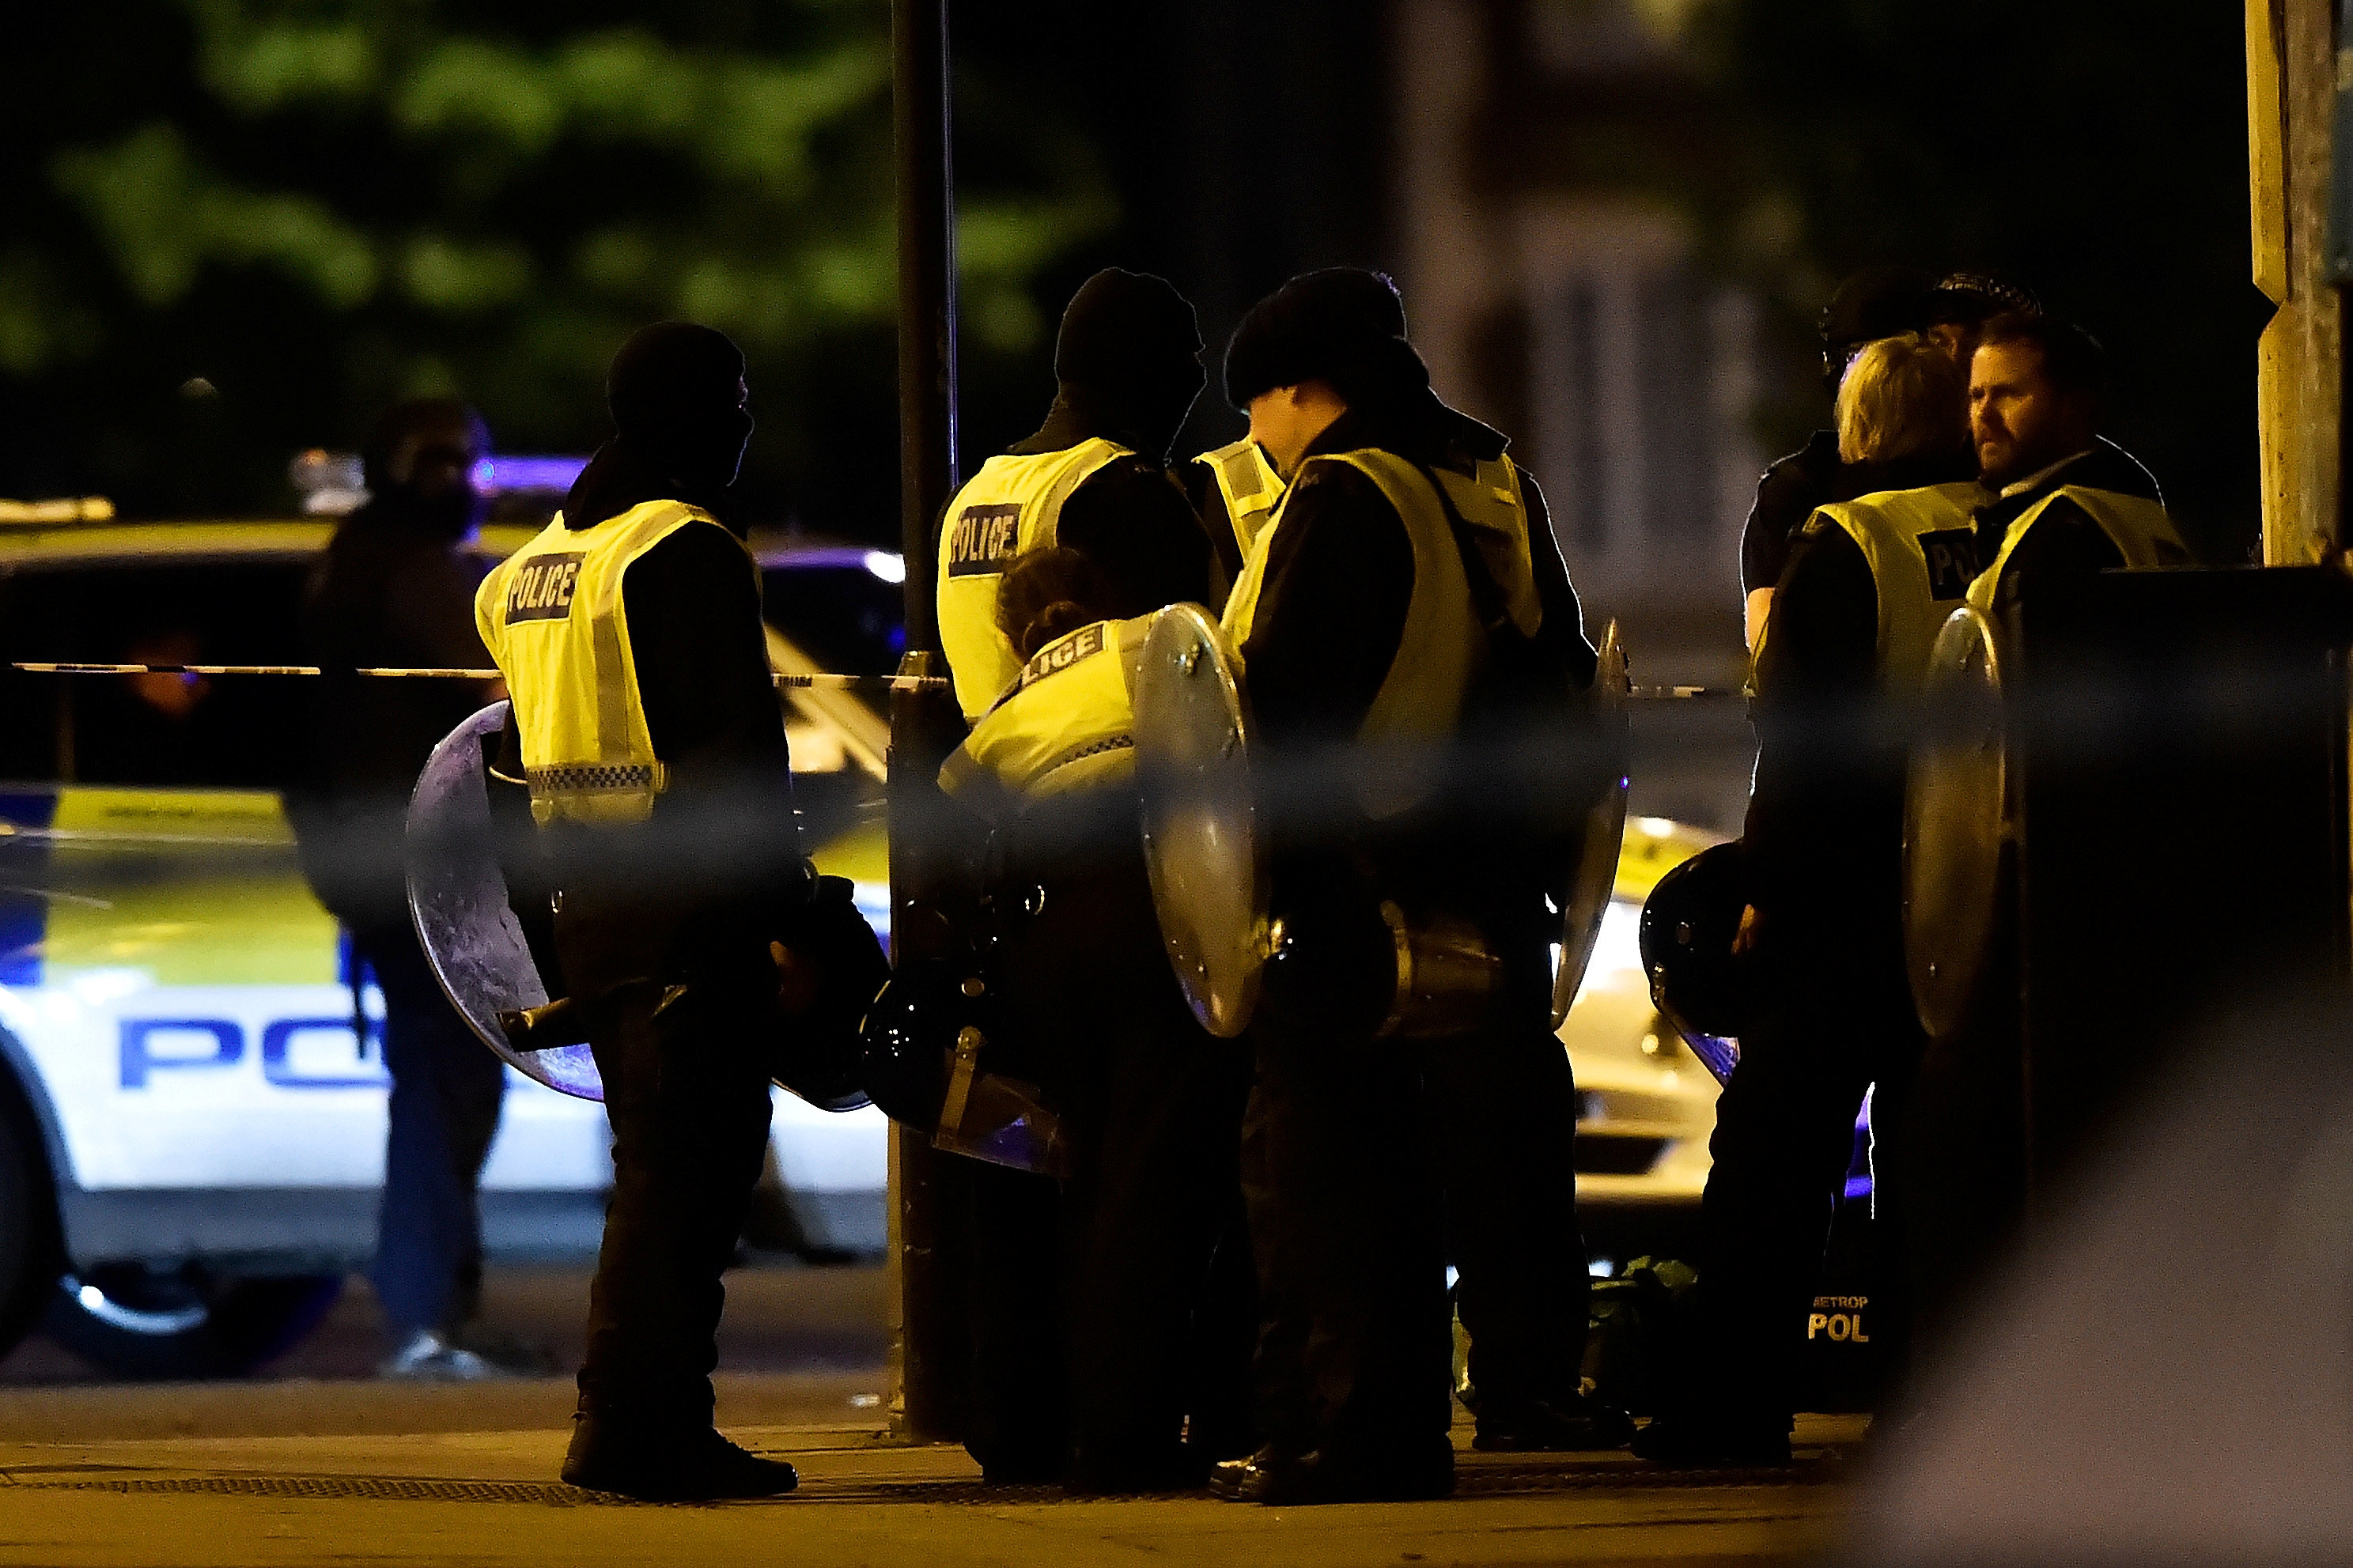 Police attend to an incident near London Bridge in London, Britain, June 3, 2017. REUTERS/Hannah McKay